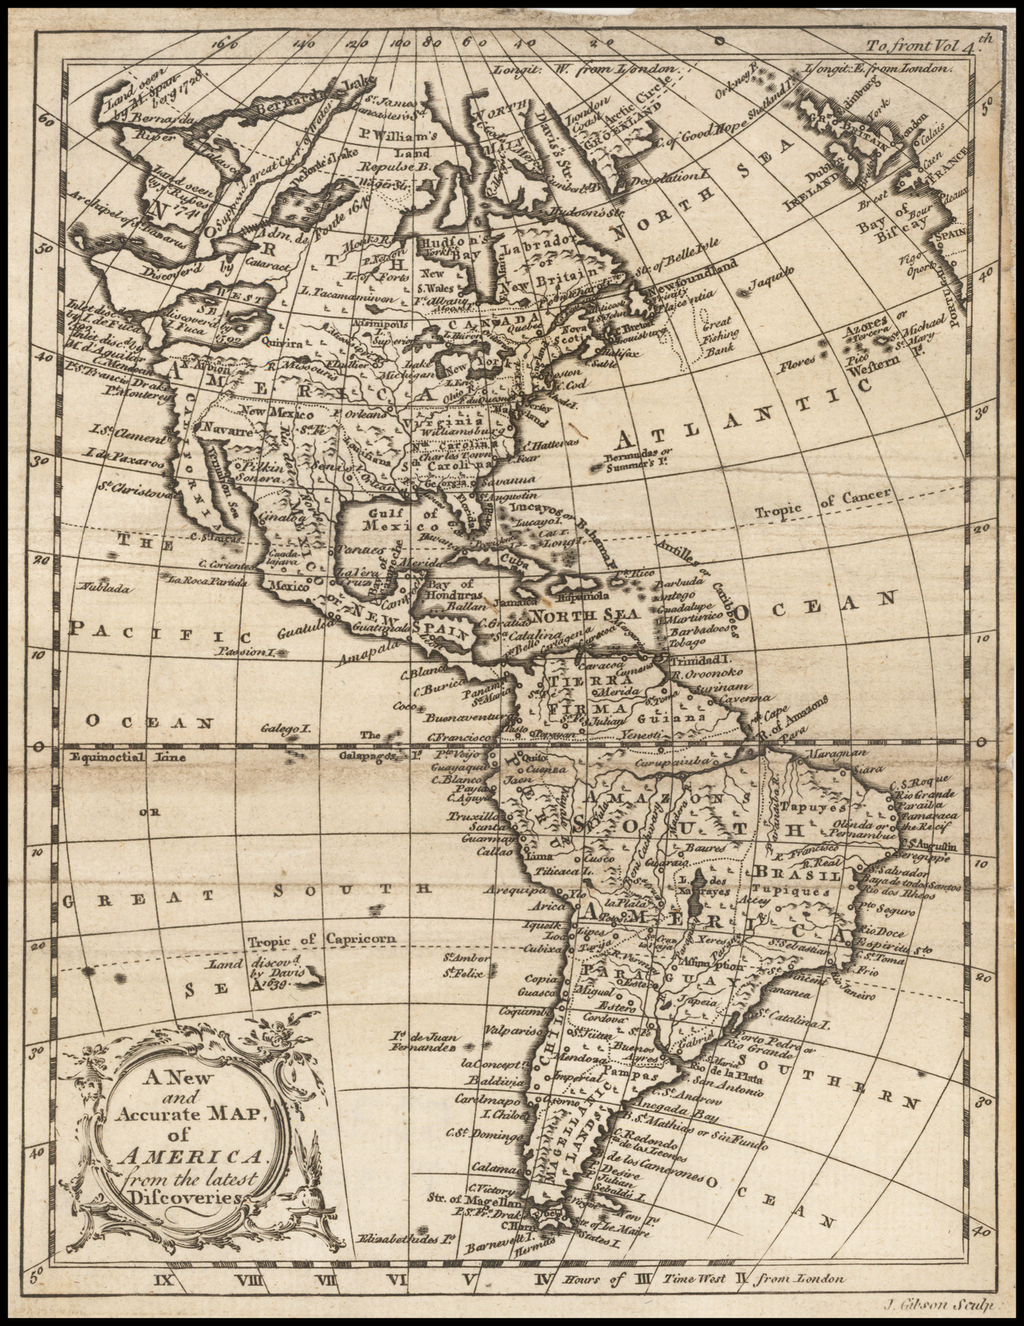 A New and Accurate Map of America from the latest Discoveries By John Gibson